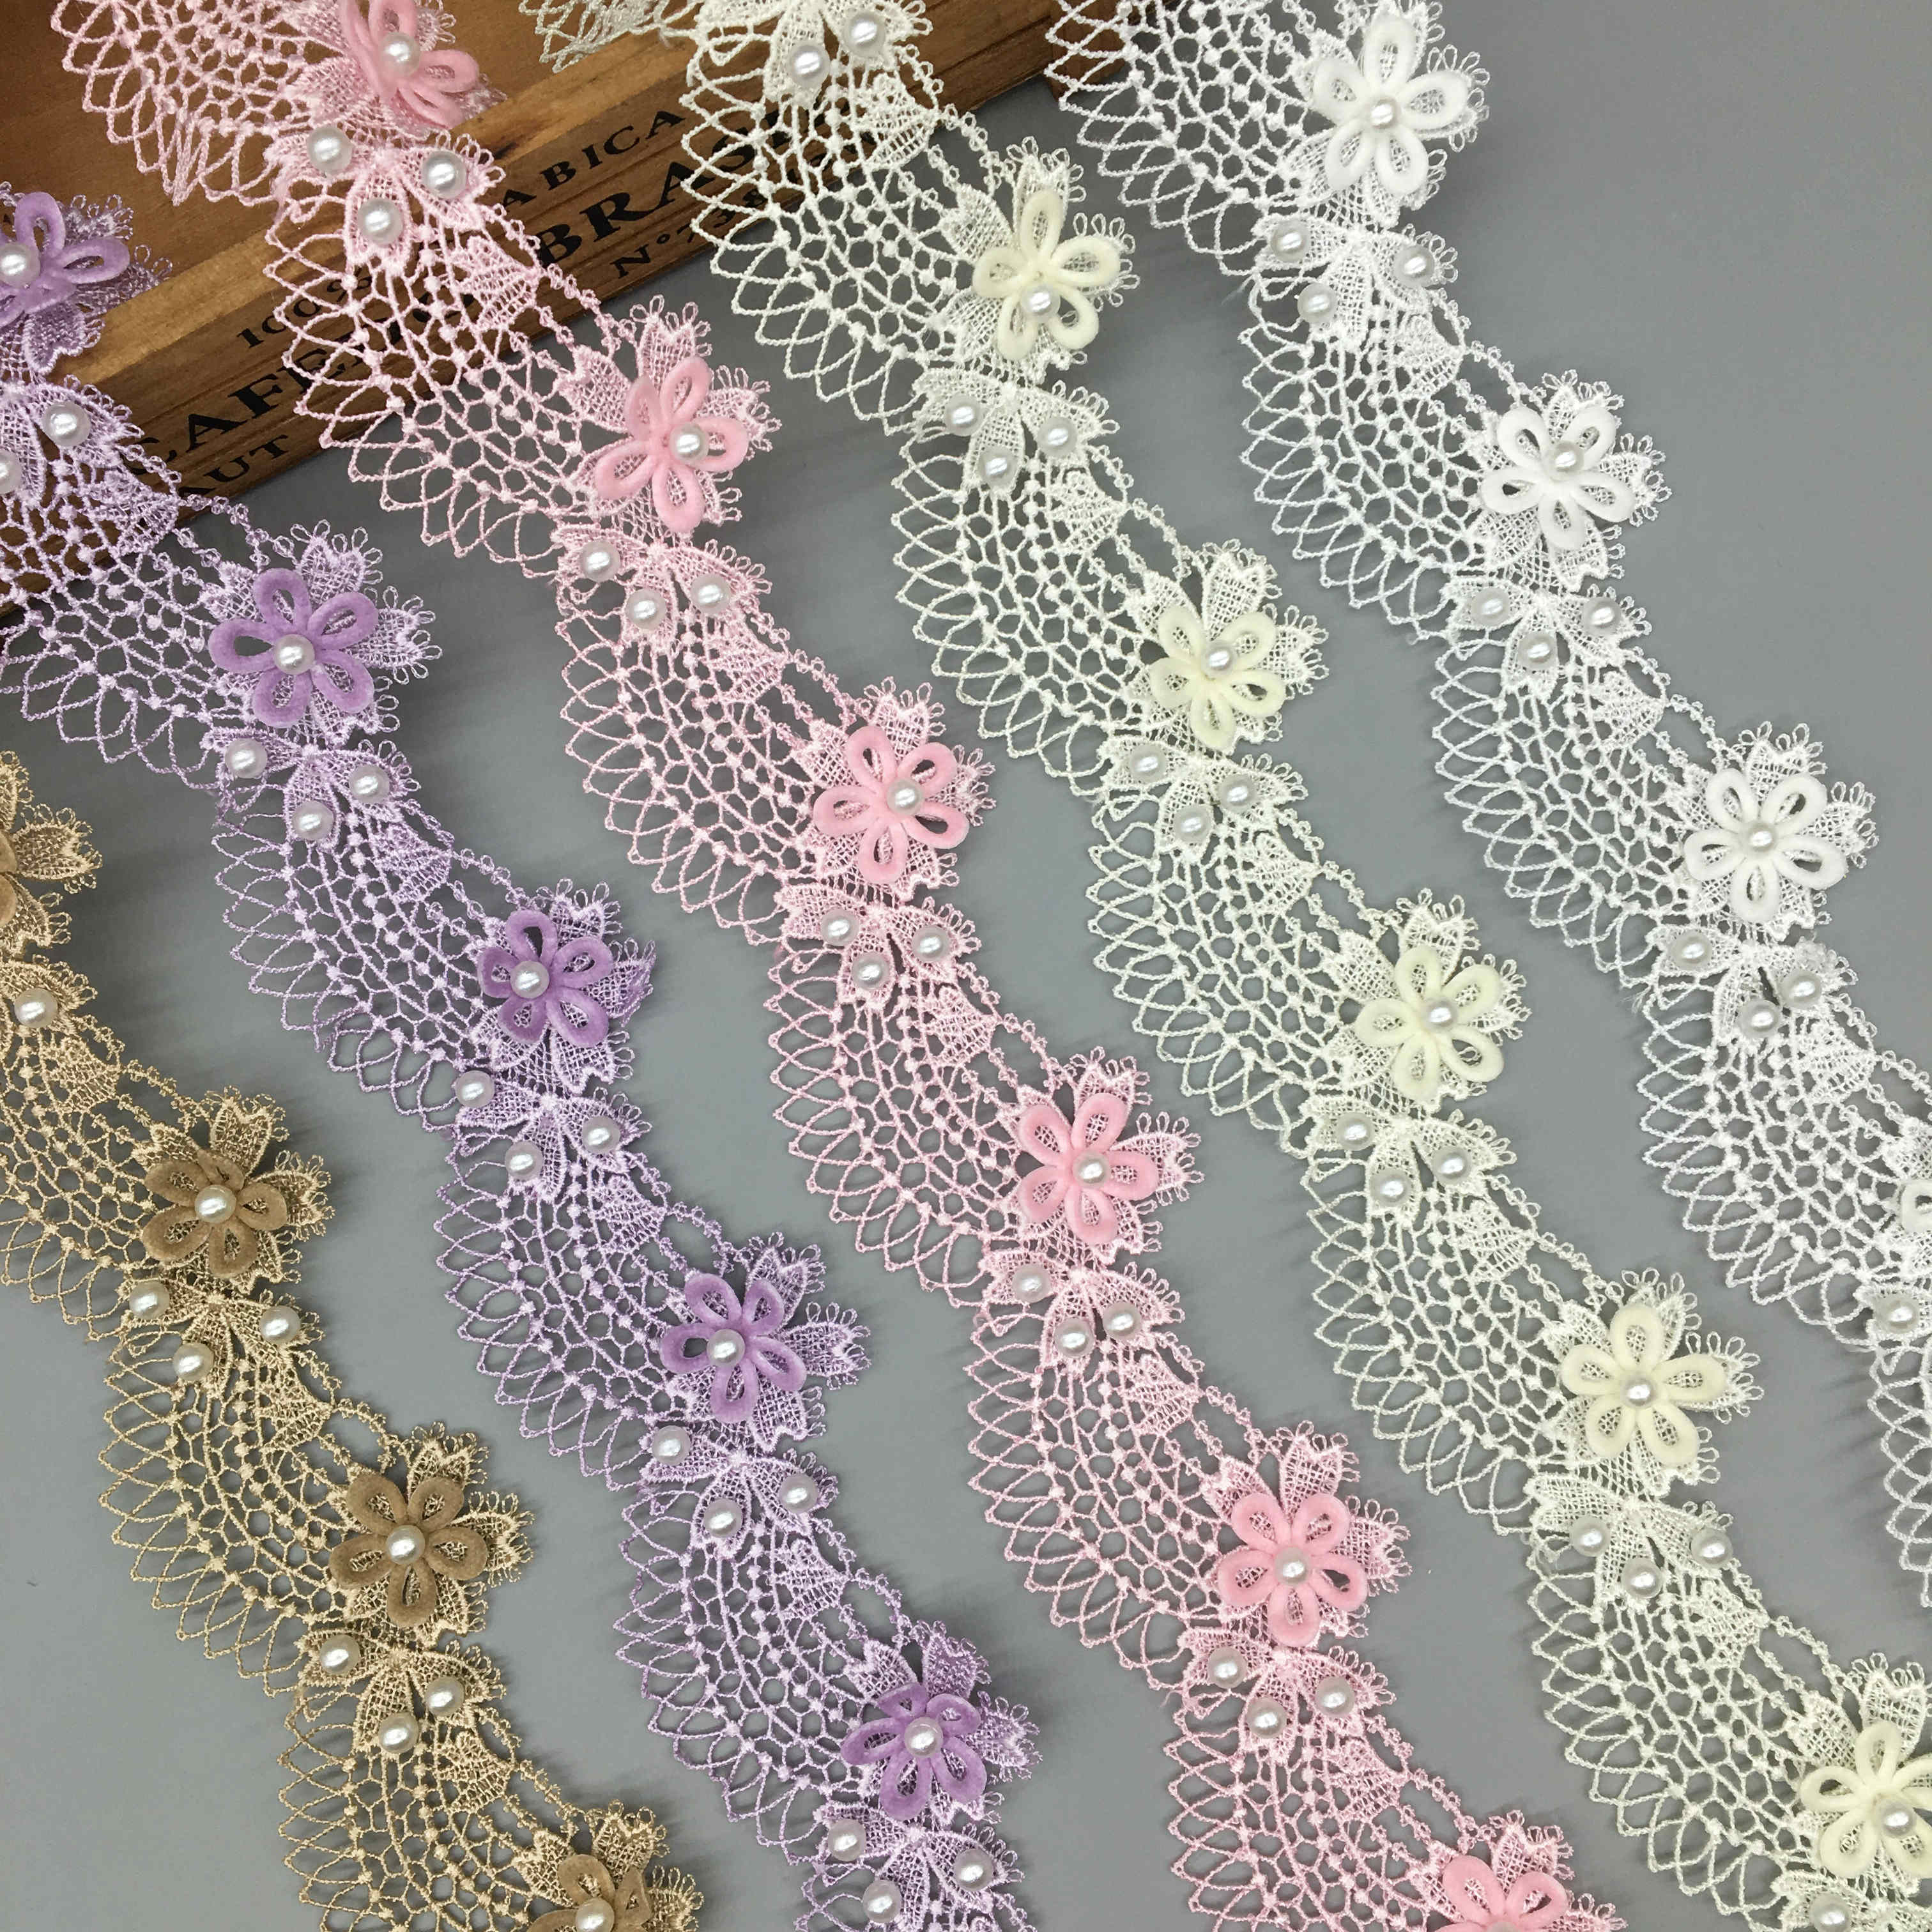 1 Yard Soluble Rose Flower Pearl Ocean Waves Embroidered Lace Trim Ribbon Fabric Sewing Craft Patchwork Handmade Decoration